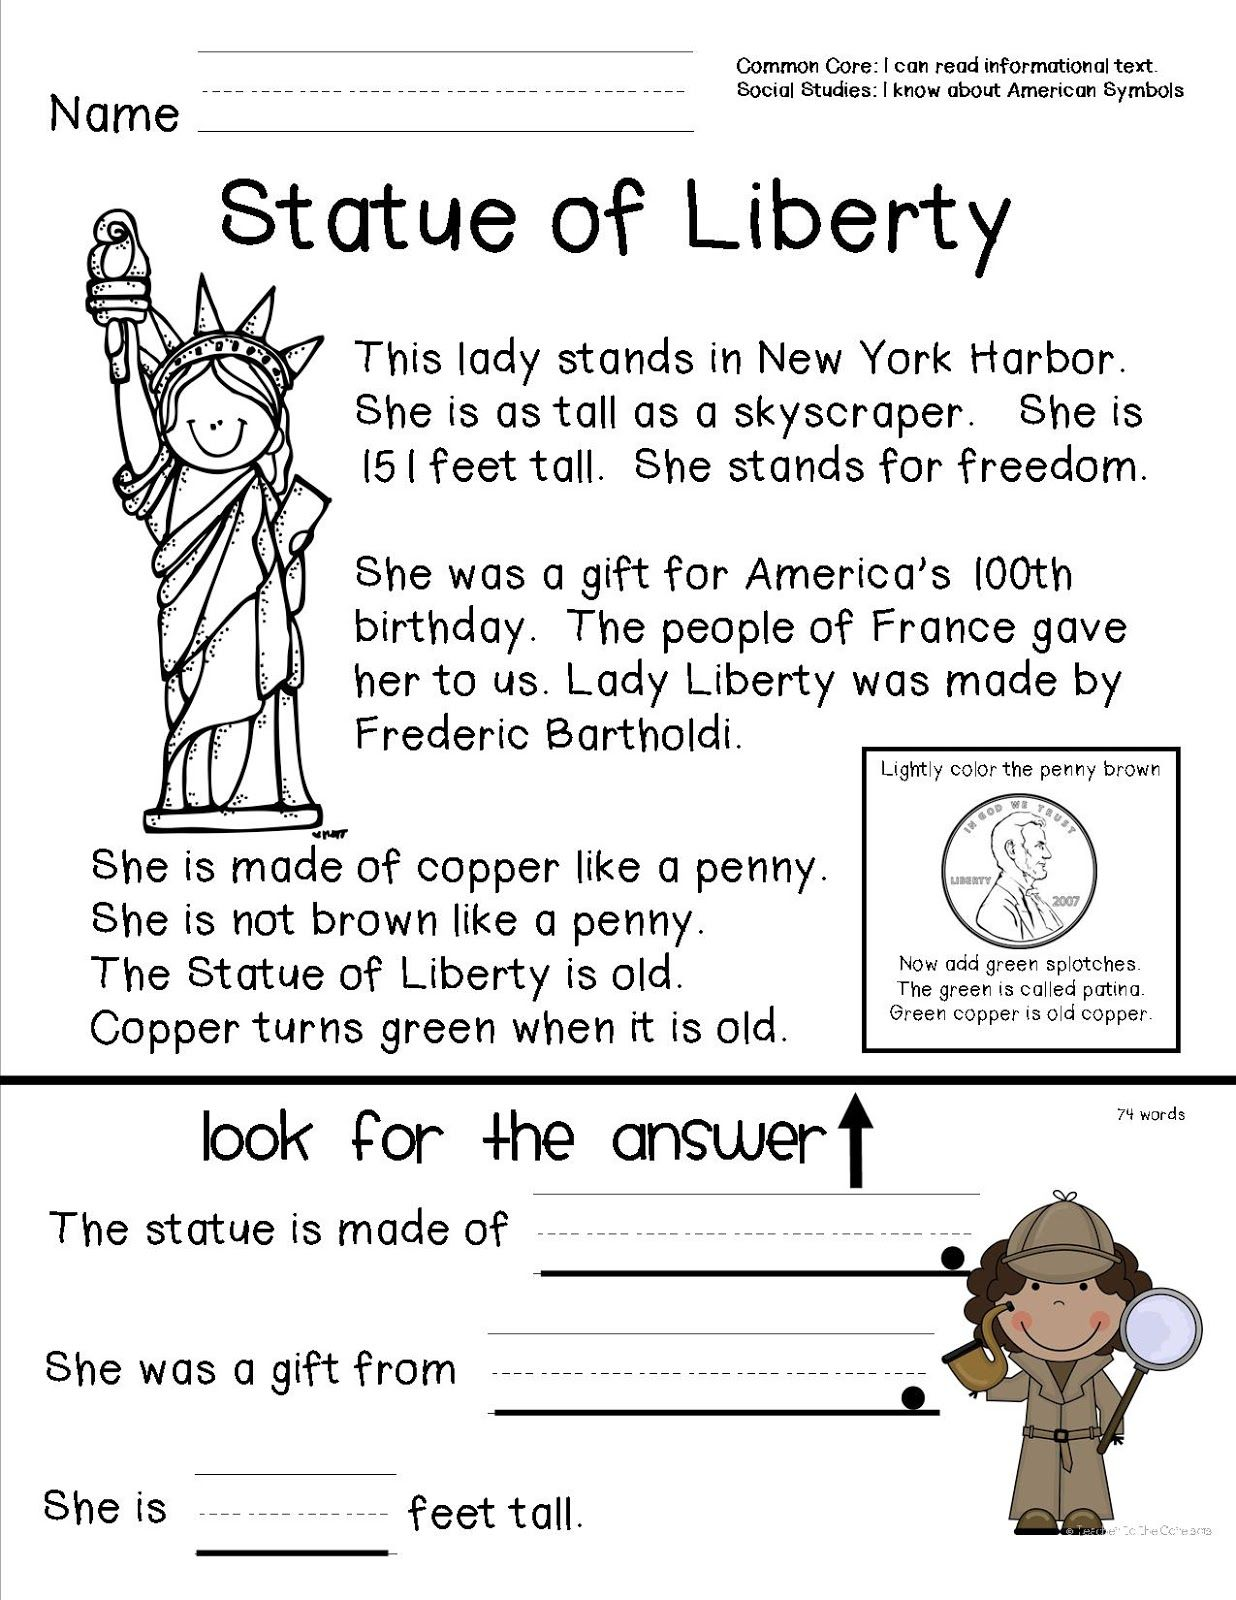 Worksheets Social Studies Reading Comprehension Worksheets reading comprehension sheet about the statue of liberty for primary grades kindergarten social studiesteaching